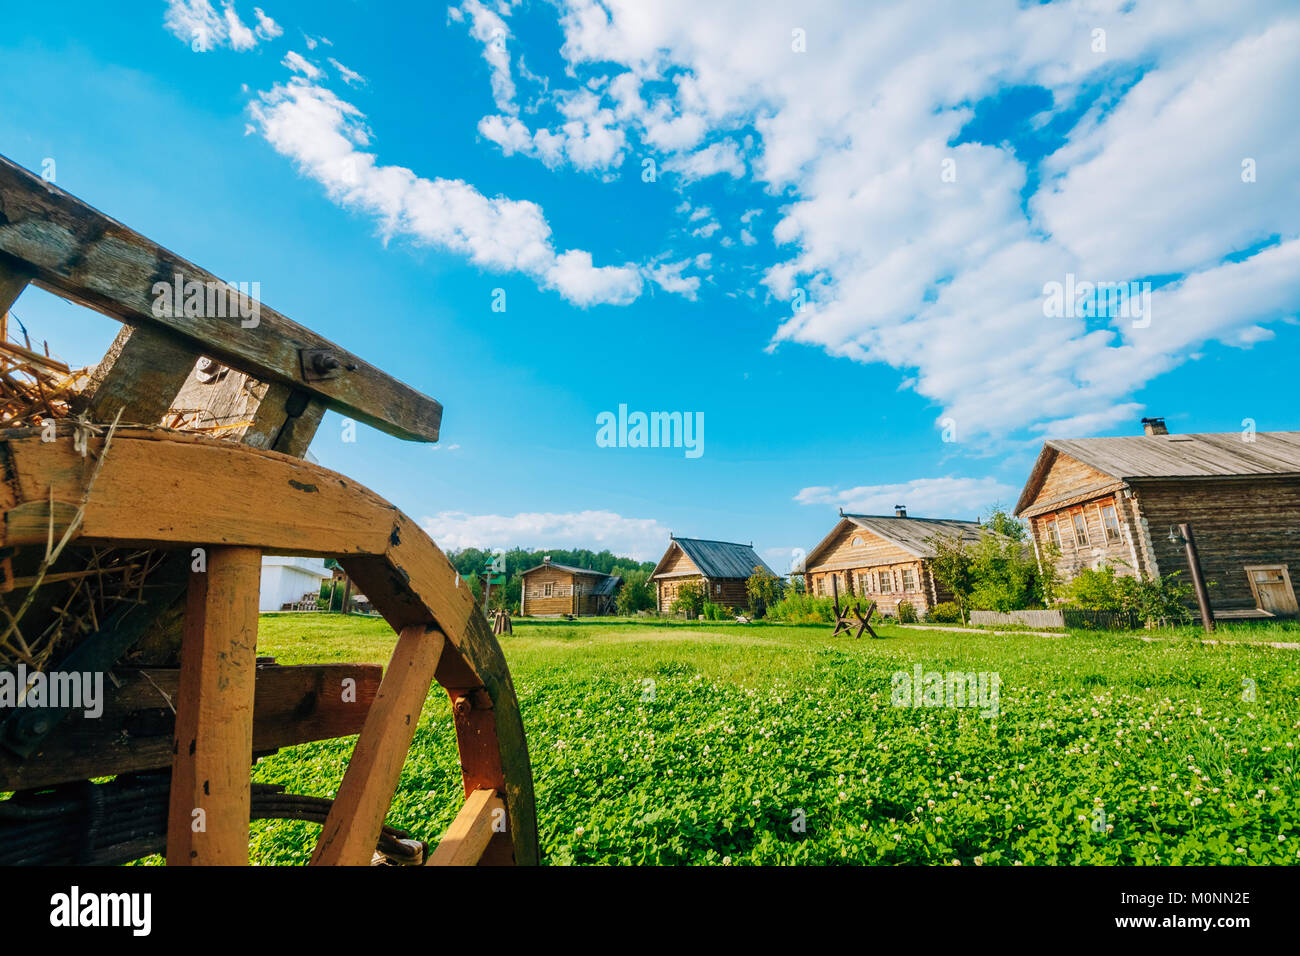 Landscape of countryside with log huts against a beautiful sky with clouds - Stock Image